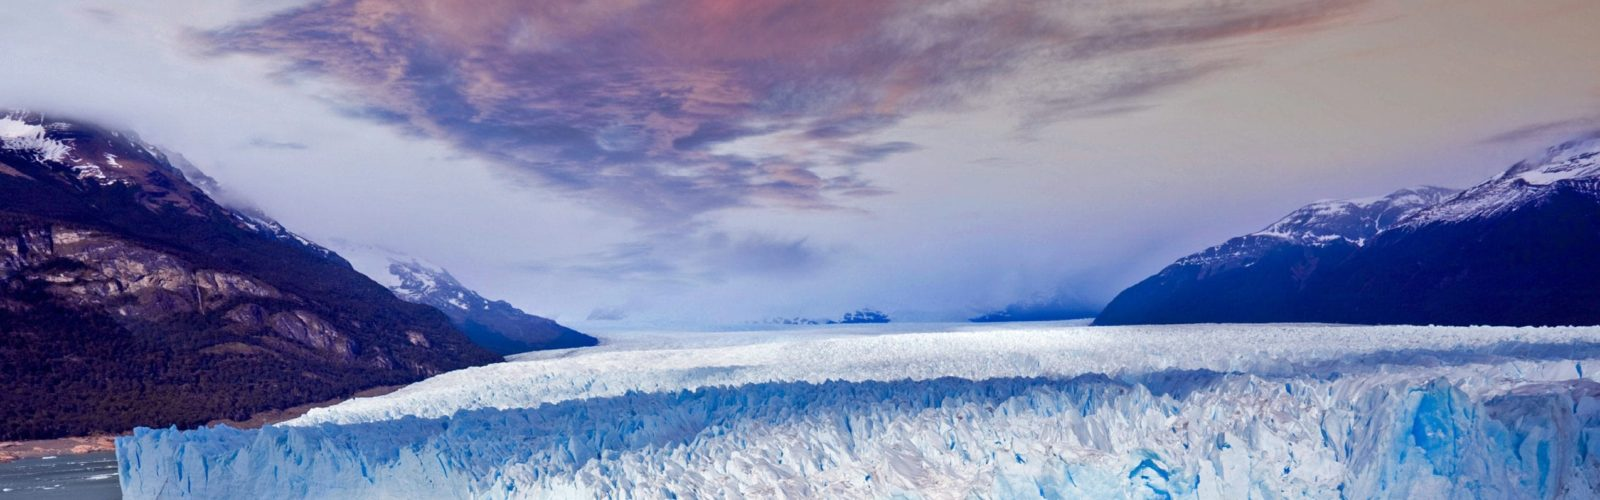 Luxury Journey To Argentina Glaciers Waterfalls And